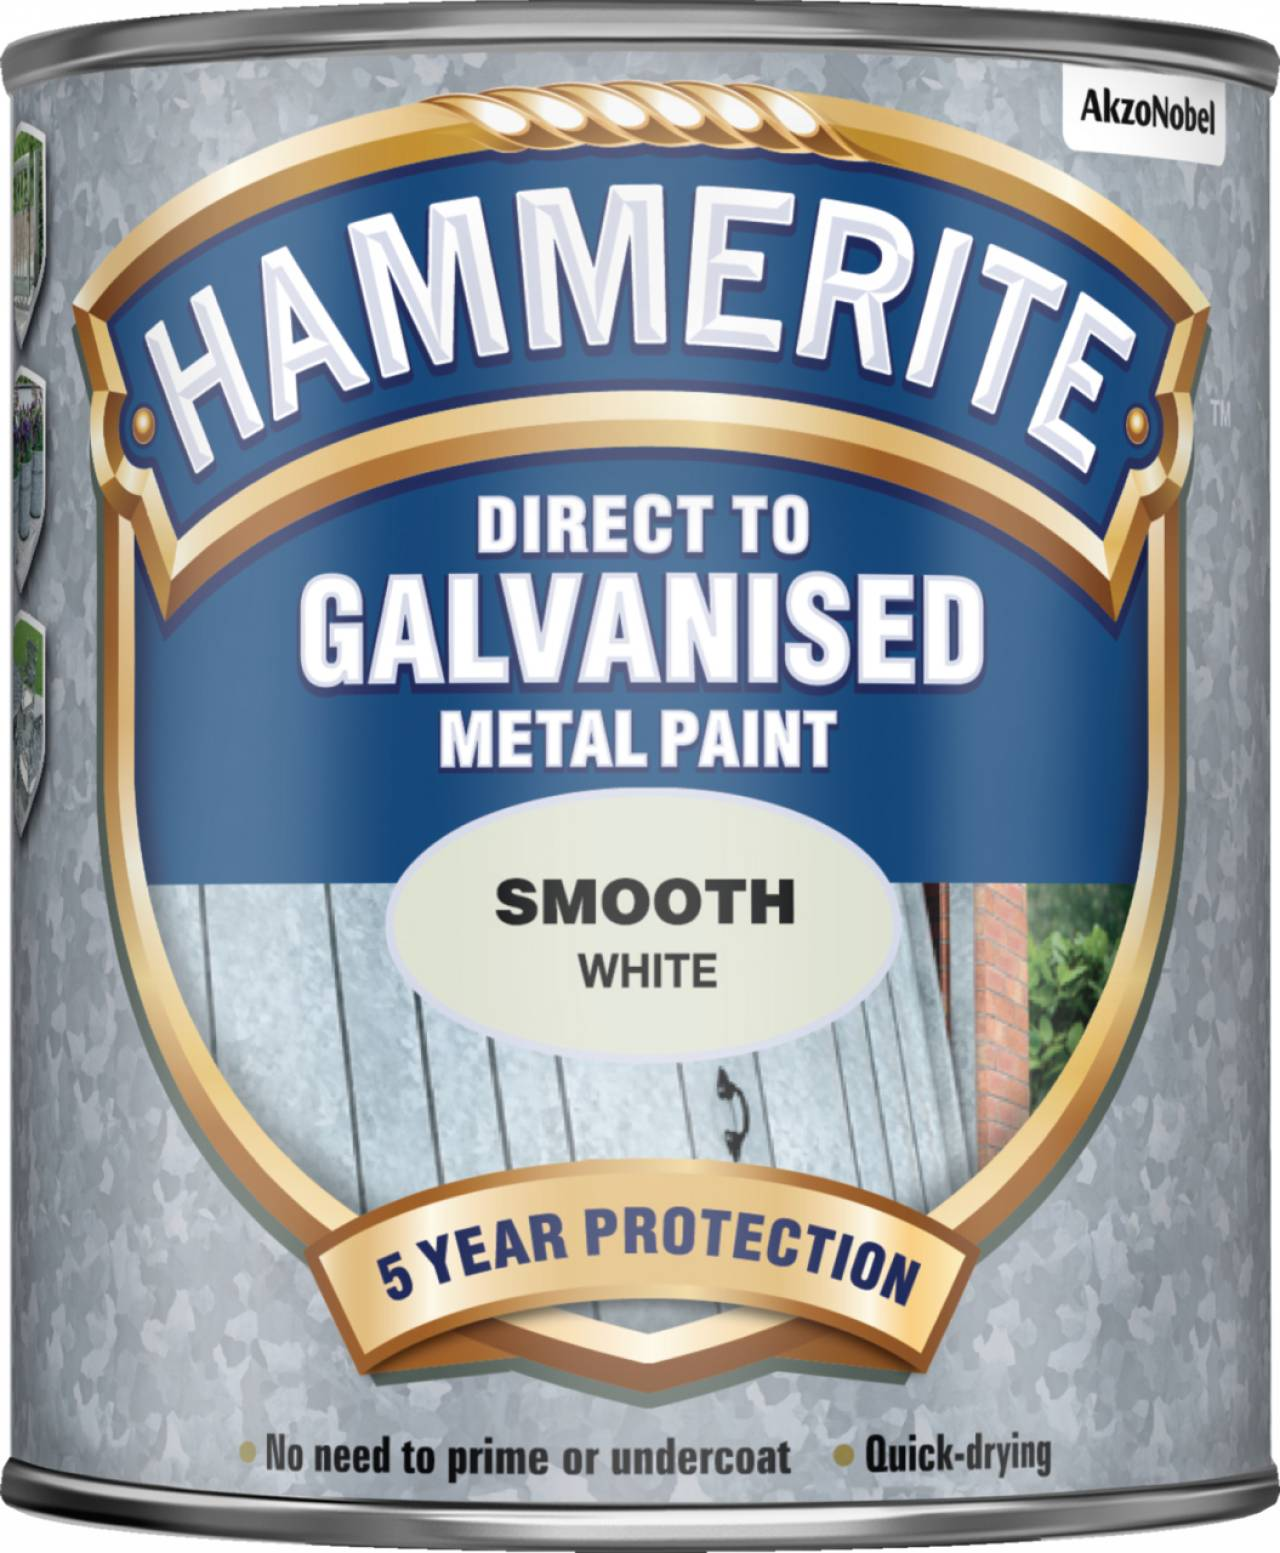 Direct To Galvanised Metal Paint Protect Your Metal